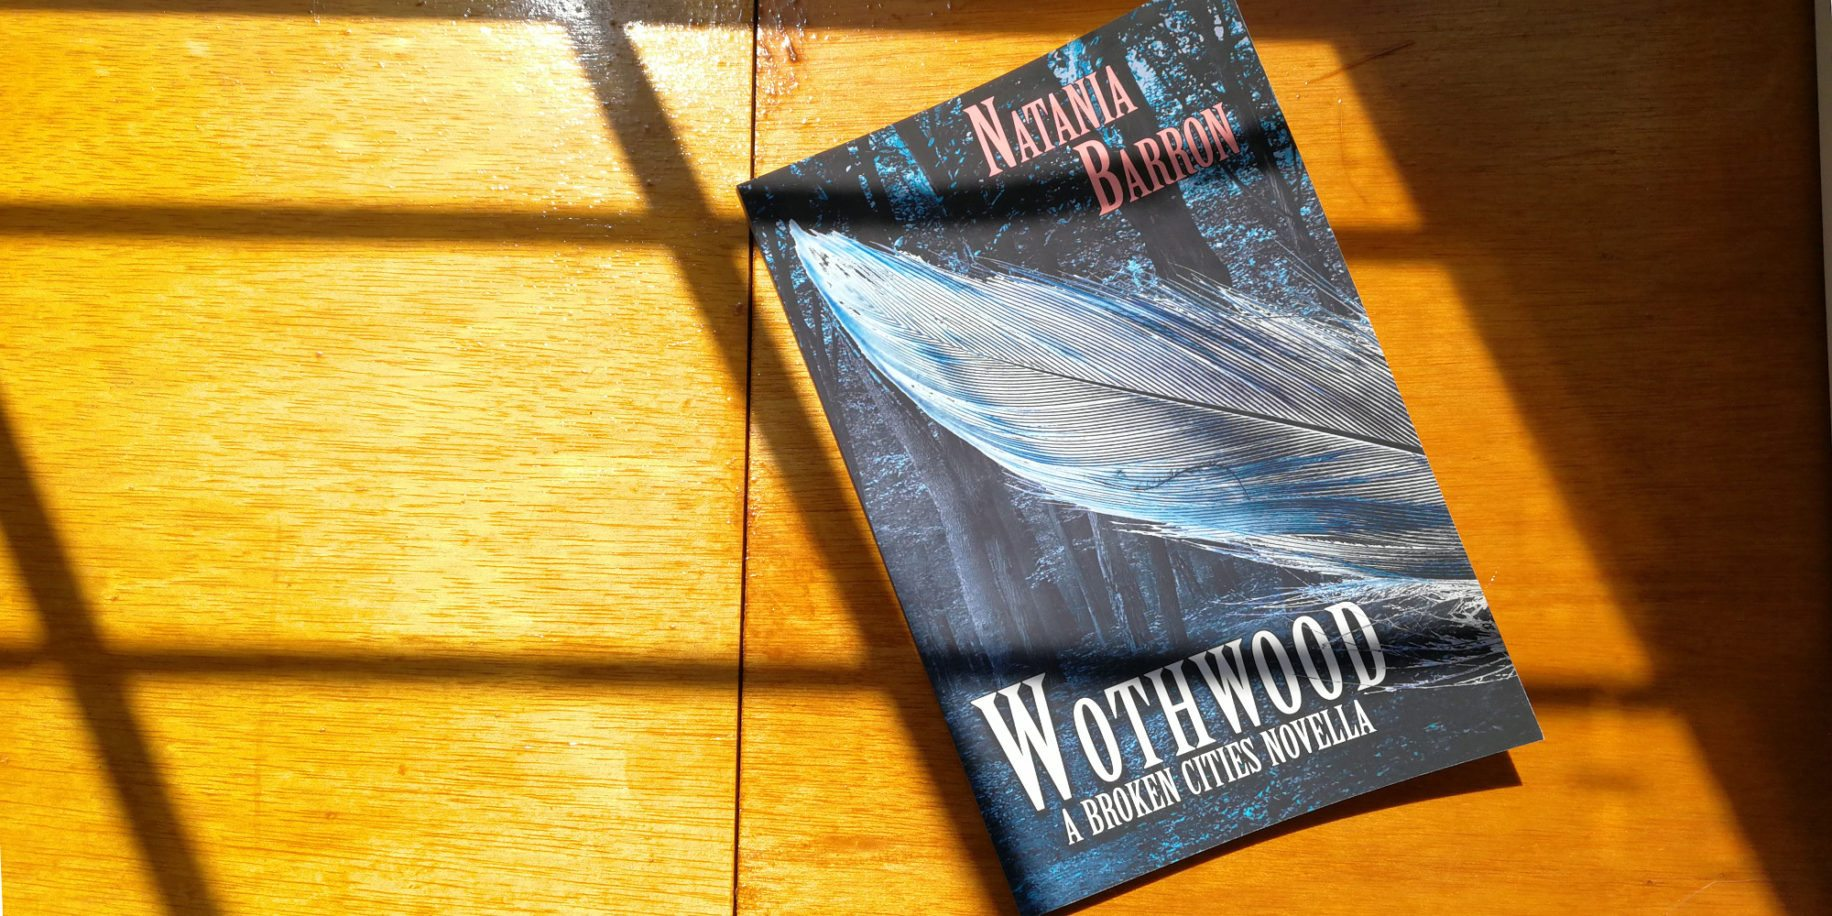 Read About the Mysteries of the Wothwood in This 'Broken Cities' Novella